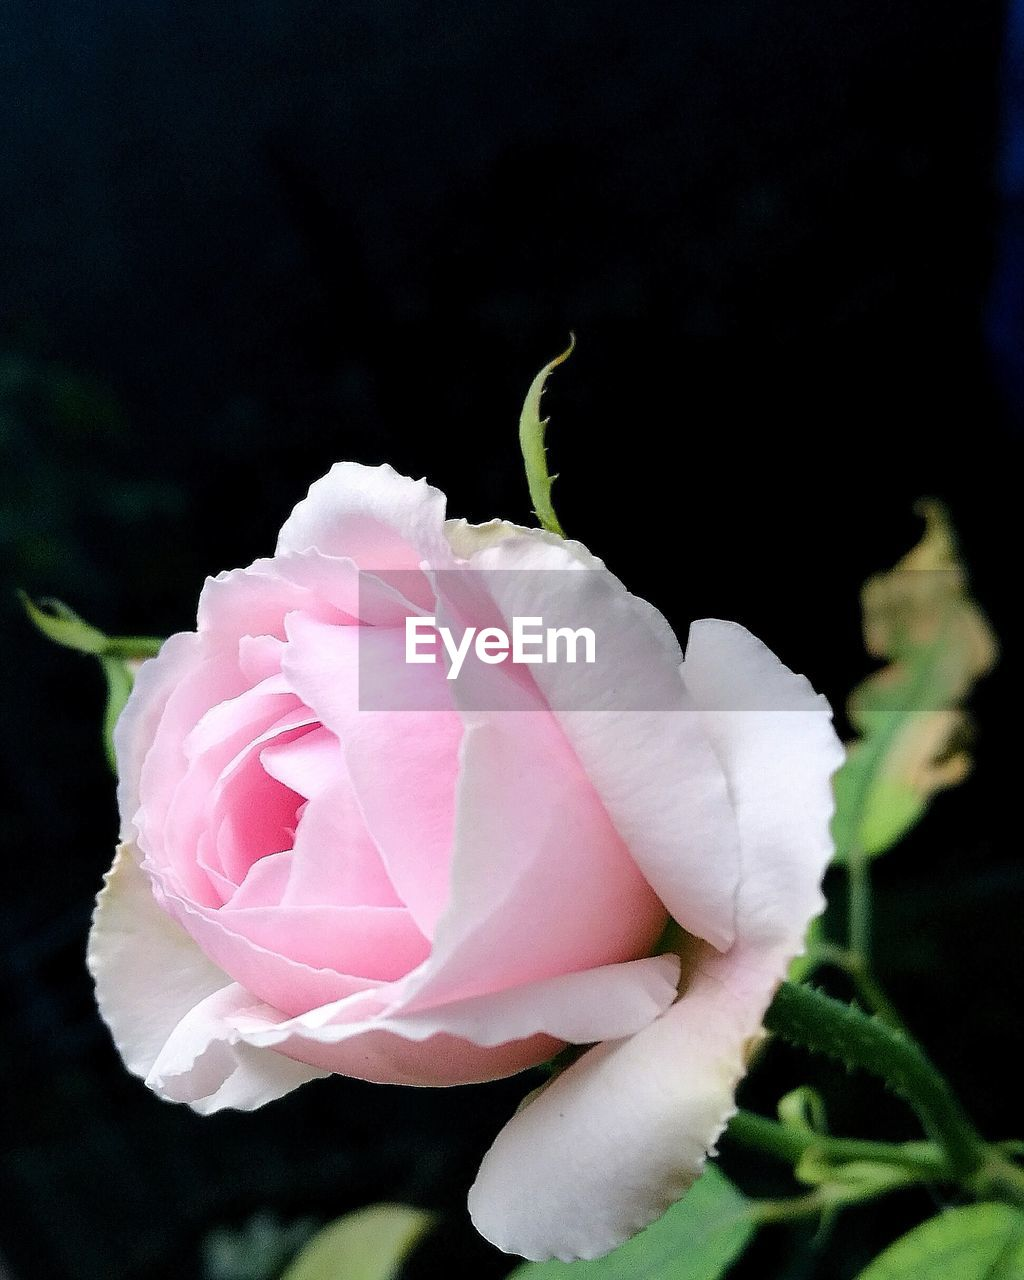 flower, flowering plant, plant, vulnerability, beauty in nature, fragility, freshness, petal, pink color, close-up, growth, rose, inflorescence, flower head, rose - flower, nature, focus on foreground, selective focus, leaf, outdoors, no people, black background